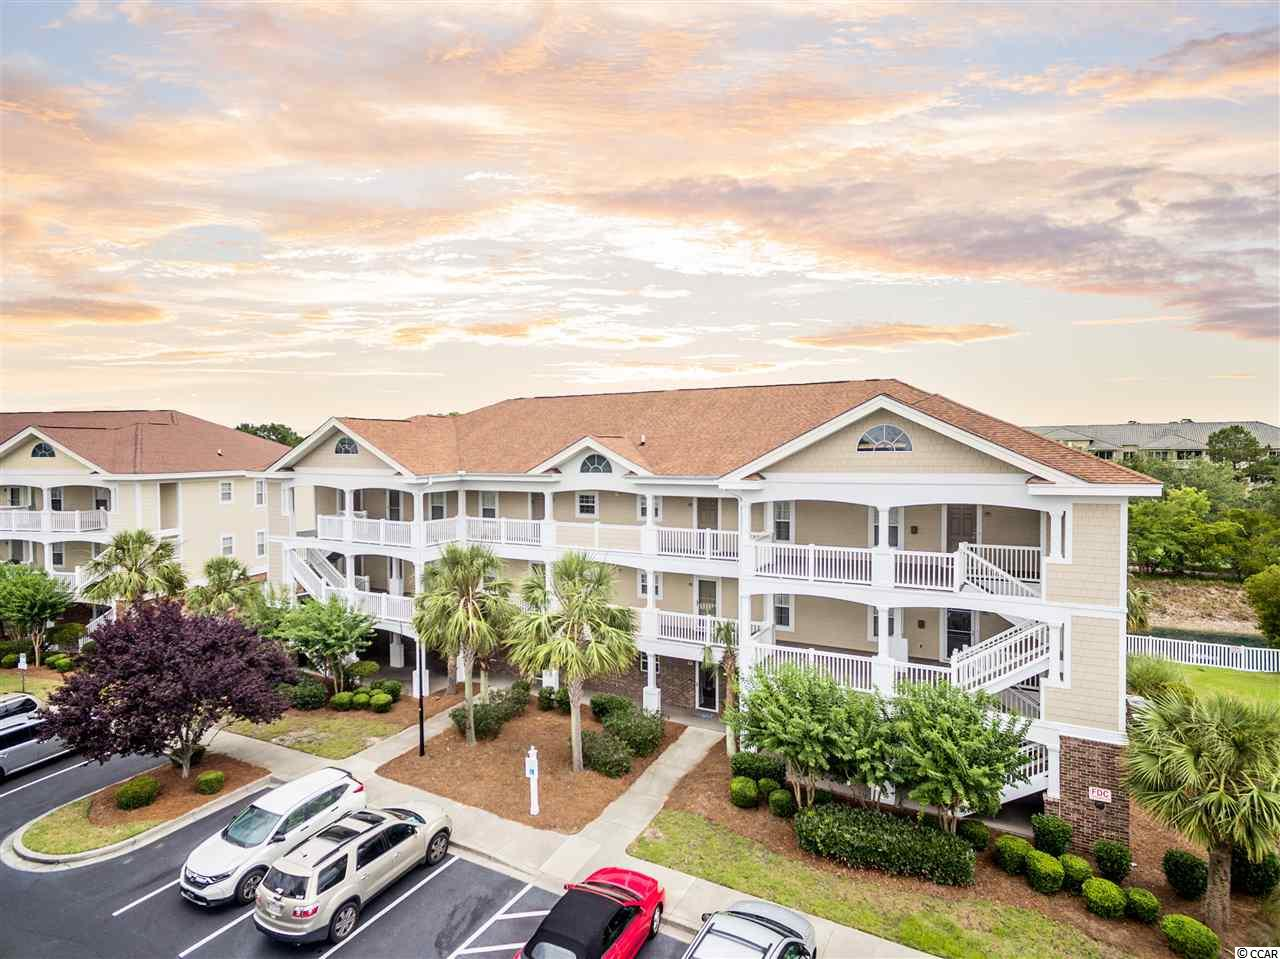 FIRST FLOOR UNIT means NO STAIRS to climb! Walk your luggage & your groceries right up the sidewalk and in the Front Door. This beautiful ground level condo is located in the IRONWOOD complex inside BAREFOOT RESORT. Located just a short walk to the Ironwood pool, tennis court, volleyball court, & basketball court, this Condo is very clean. It features 2 Bedrooms, 2 Bathrooms, a spacious kitchen, Master Bedroom with 2 closets, & a private screened porch with a storage closet. An exterior exit on the screened porch allows for easy access to the back yard for walking your dog or feeding the turtles in the fenced pond behind the building. HOA fees include Wireless Internet, Cable TV, Phone Service, insurance, common maintenance/repair, lawn/landscaping, water, sewer, trash, pest control, and access to the Barefoot Beach Cabana, offering gated parking, private access, & a seasonal shuttle service from Memorial Day to the end of October. All owners also have access to a 15,000 square foot salt water pool directly on the ICW. BAREFOOT LANDING is located just across the swing bridge & is home to the House of Blues, Alabama Theatre, LuLu's Restaurant, Blueberry's Grill, Flying Fish Public Market & Grill, Wild Wing Cafe, & plenty more. More shopping is located nearby at Tanger Outlets, Walmart, & the Myrtle Beach Mall. Call & schedule a showing today, this first floor unit shouldn't last long.